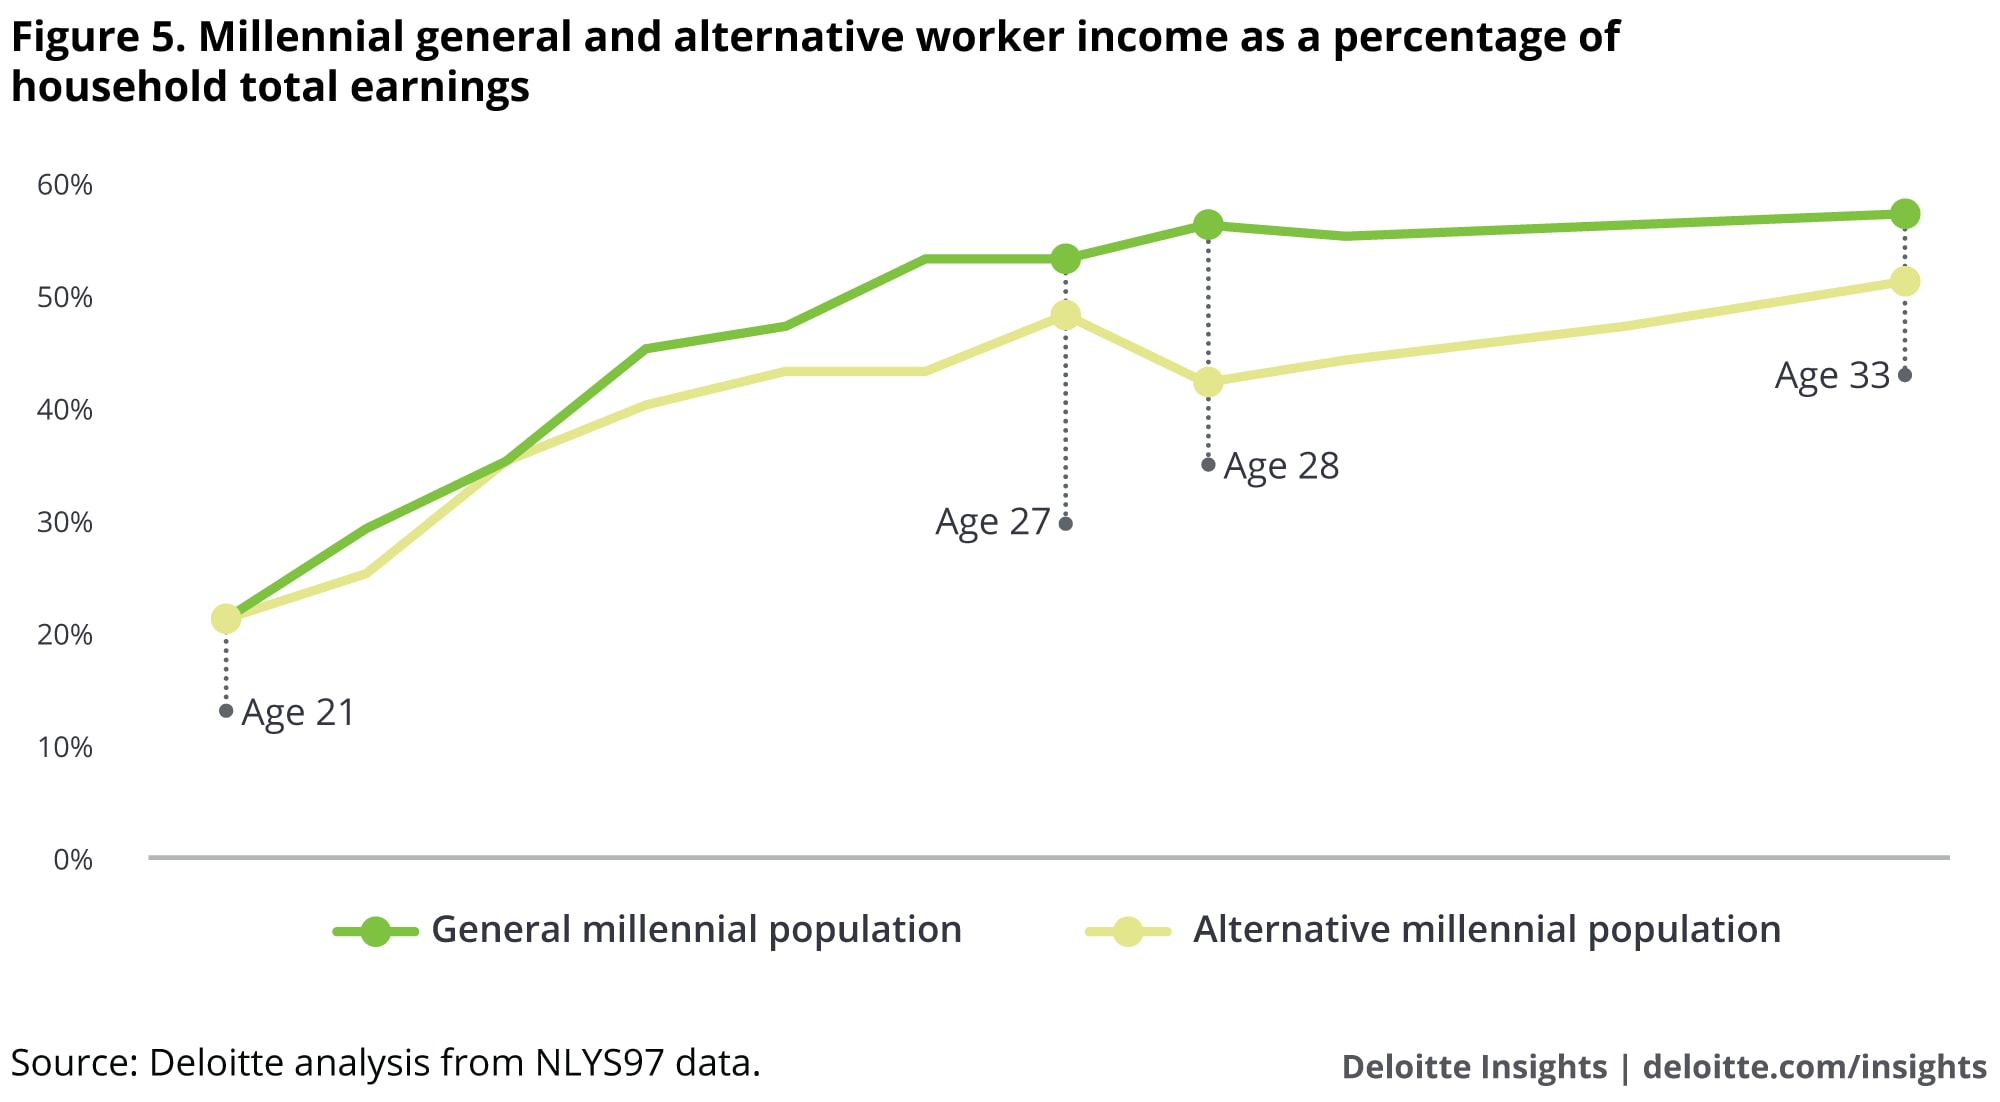 Millennial general and alternative worker income as a percentage of household total earnings